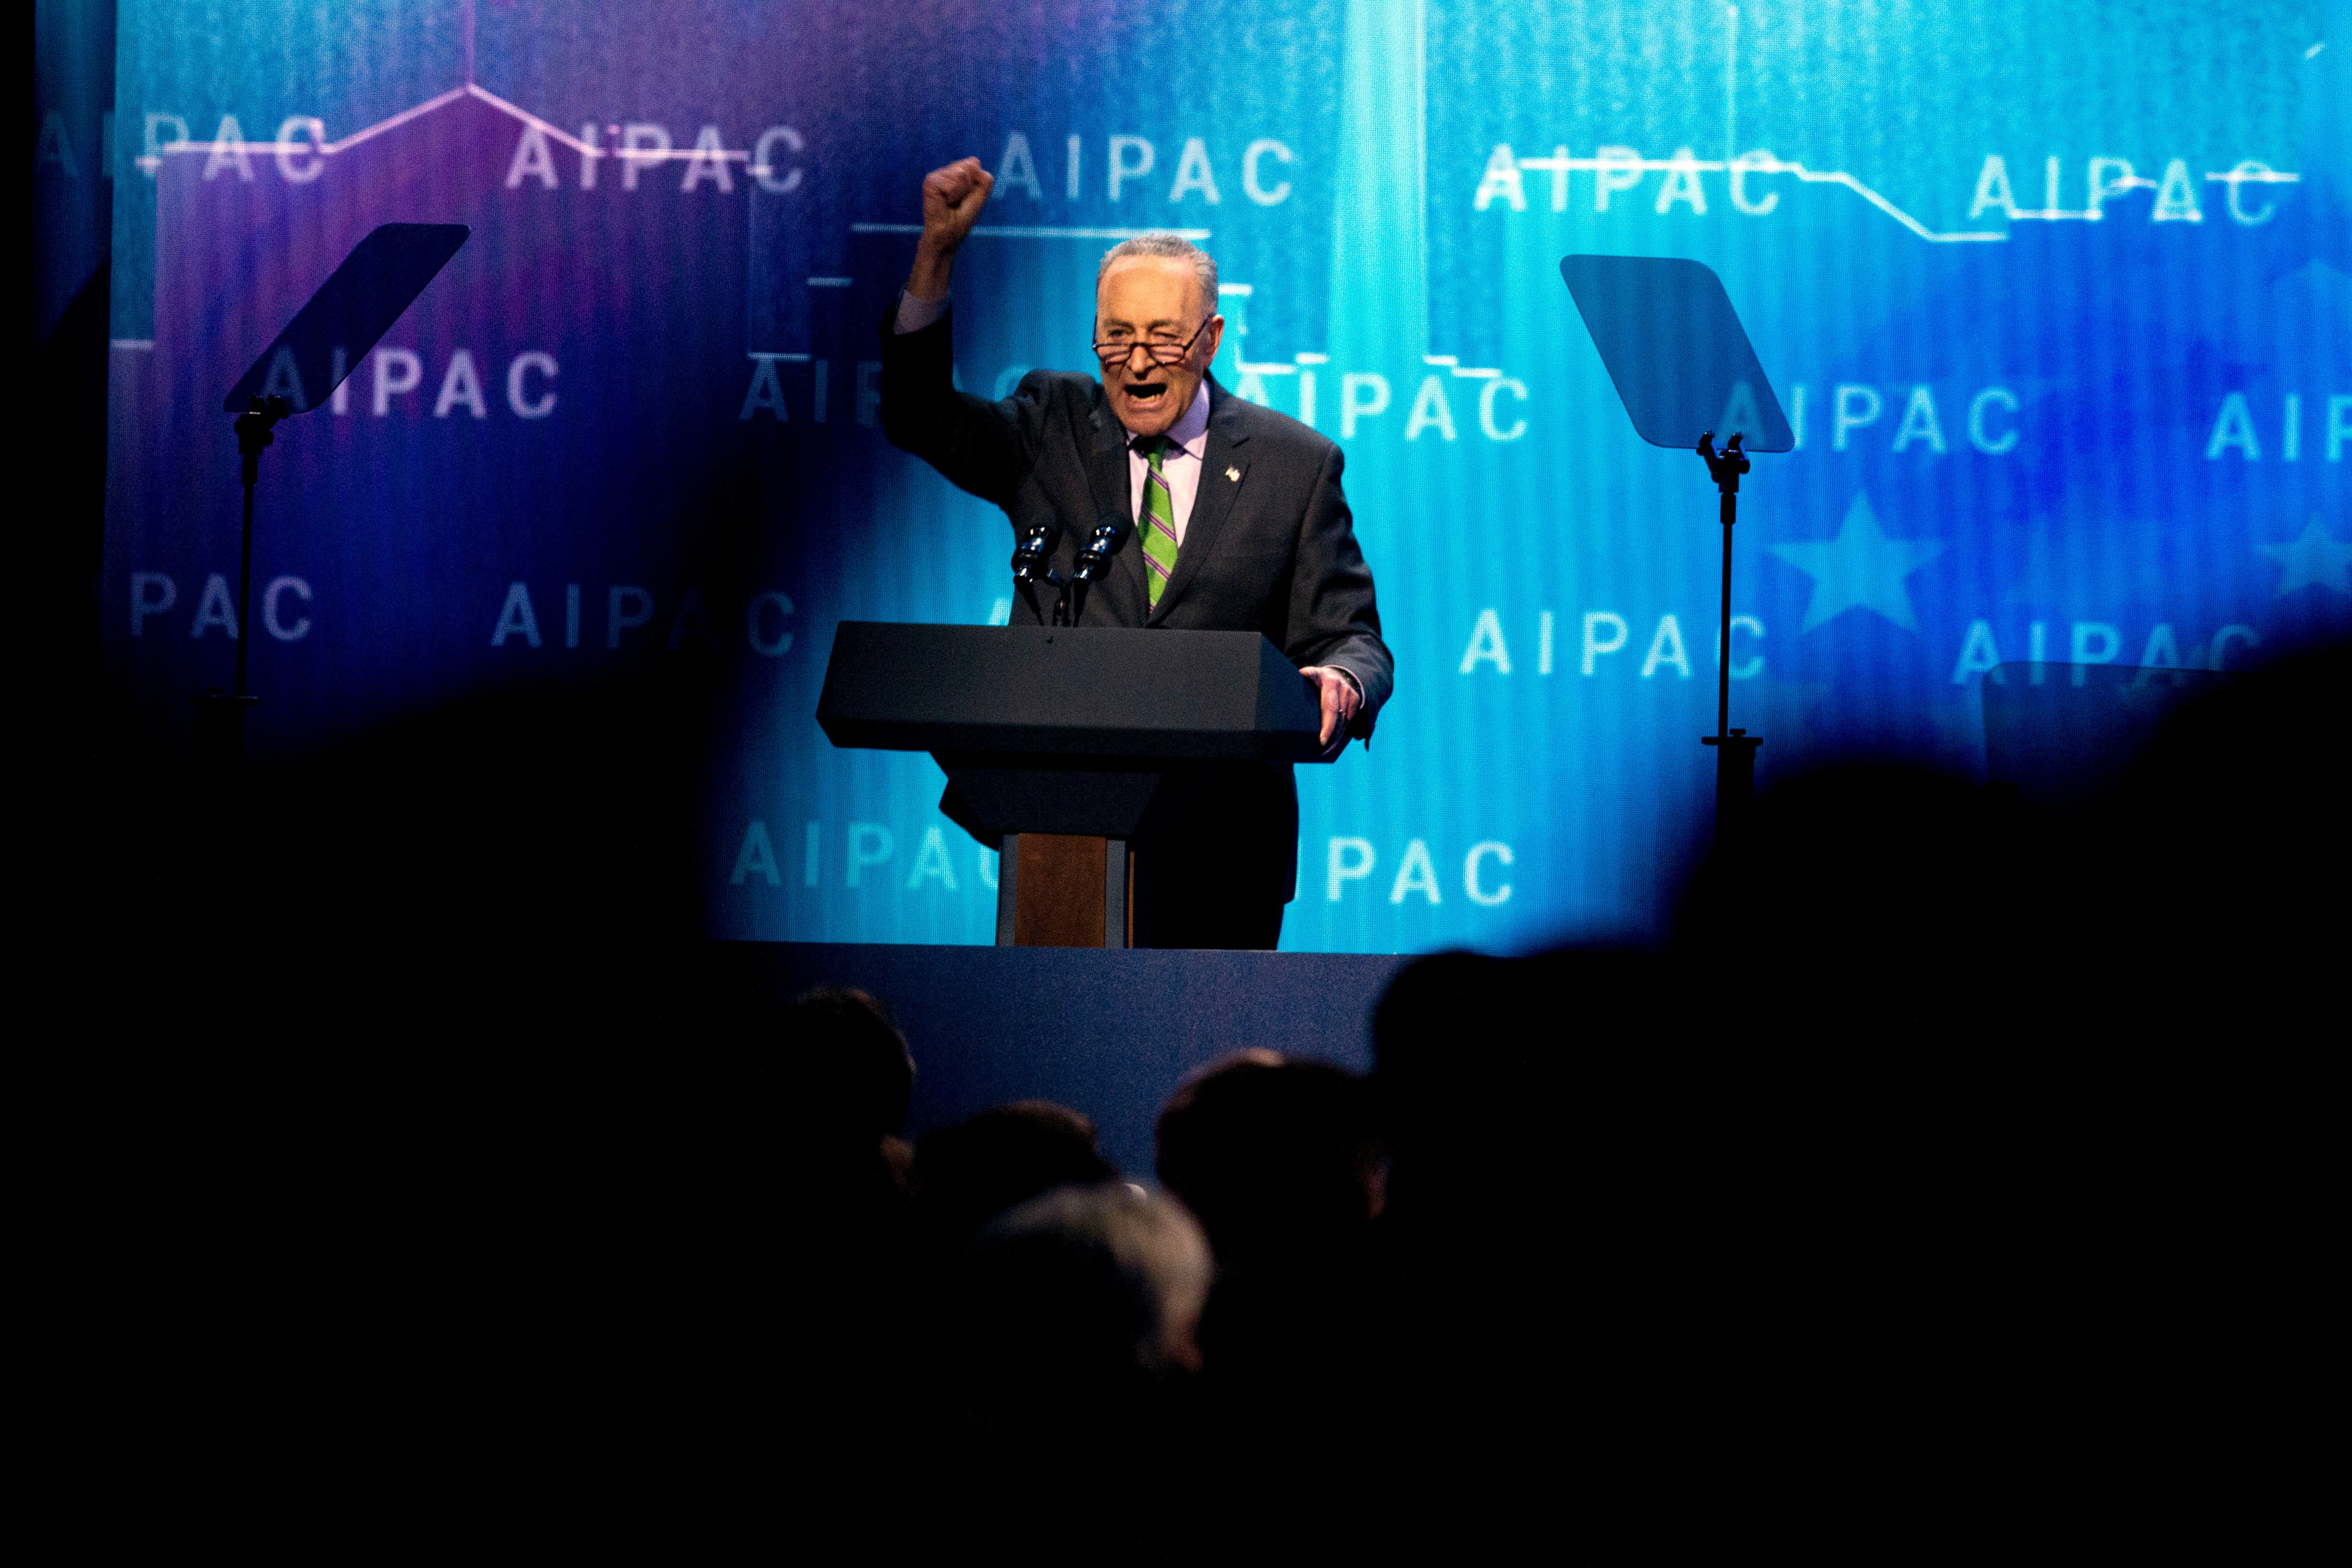 Senate Minority Leader Chuck Schumer, D-N.Y., speaks at the 2018 American Israel Public Affairs Committee (AIPAC) policy conference, at Washington Convention Center, Monday, March 5, 2018, in Washington. (AP Photo/Jose Luis Magana)